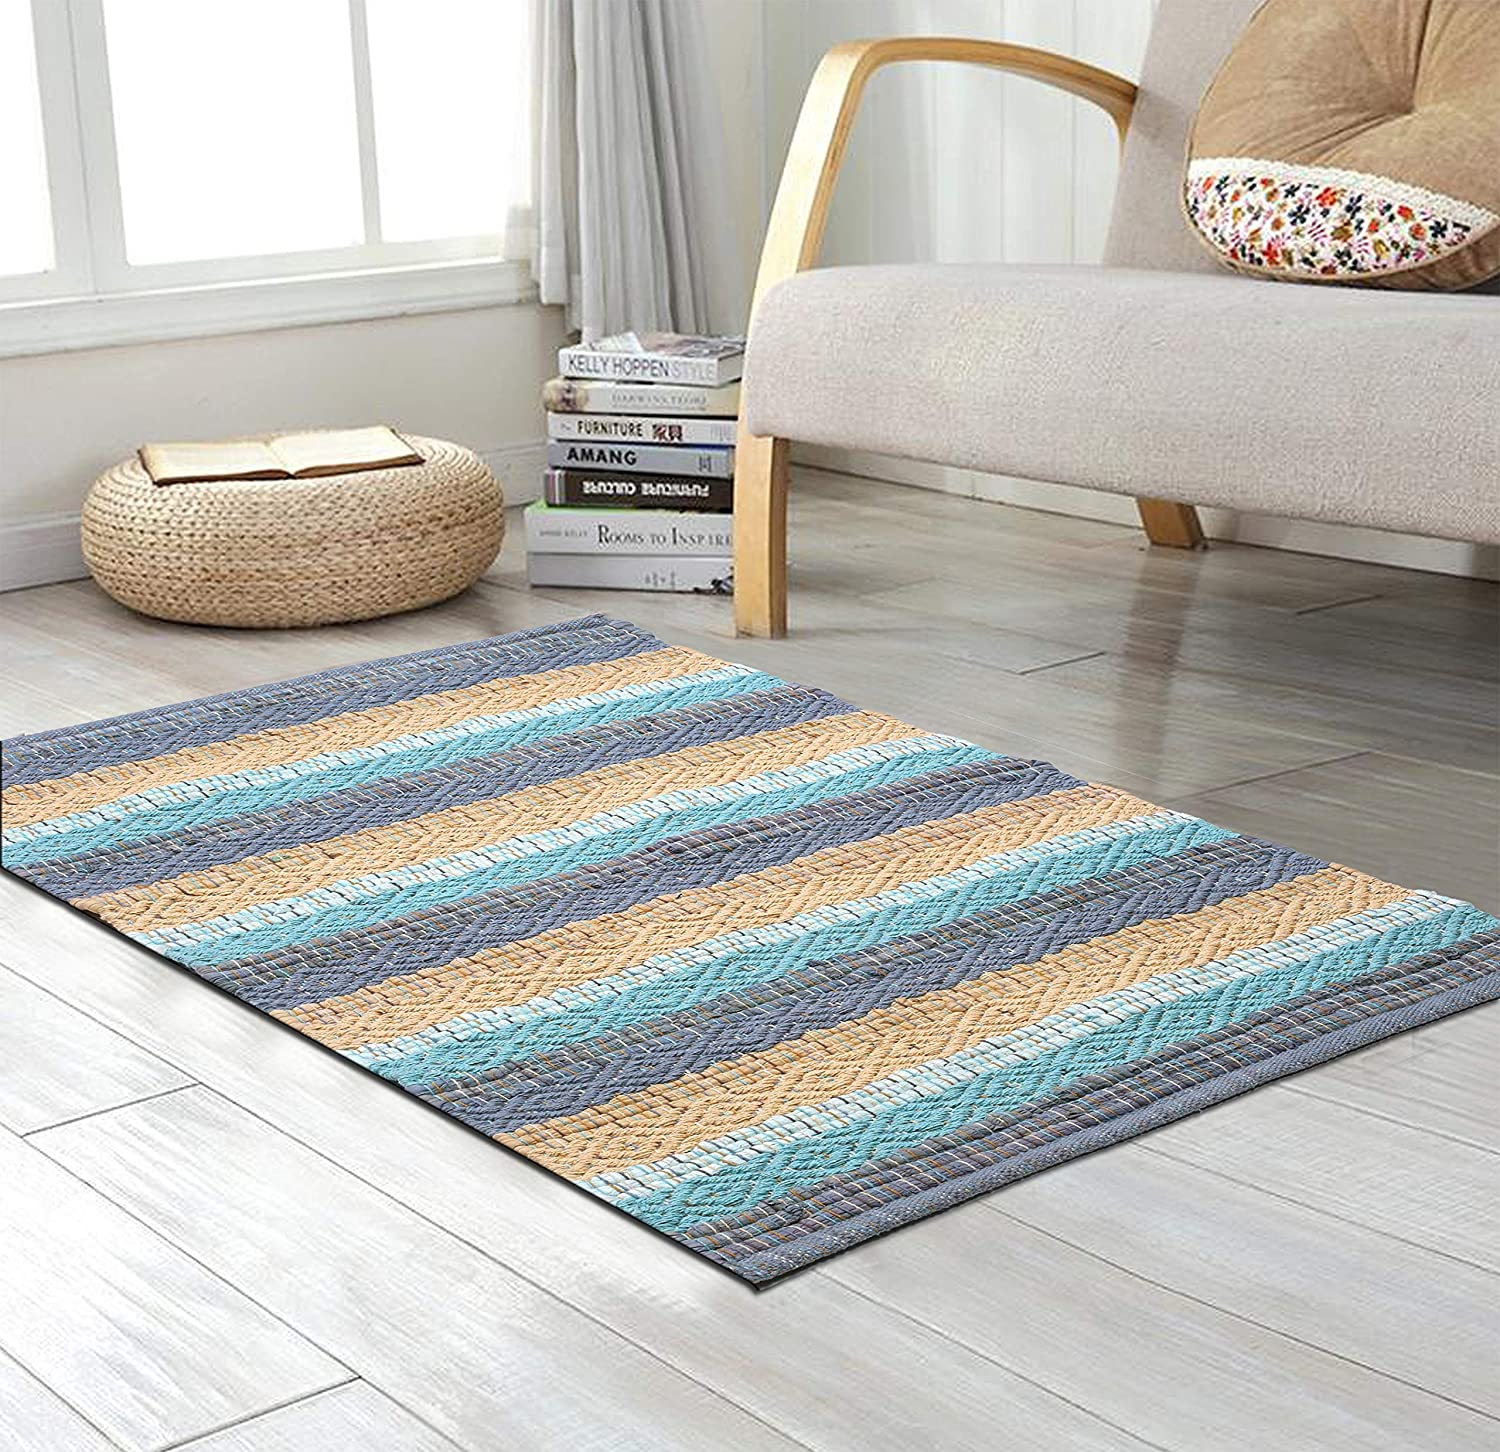 Cotton Rugs in Diamond Weave 24x36 inch Spa Blue Combo,Cotton Area Rugs,Indoor Out Door Rugs 2'x3',Rugs for Living Room, Machine Washable Rugs,Hand Woven & Kitchen Entryway Rug